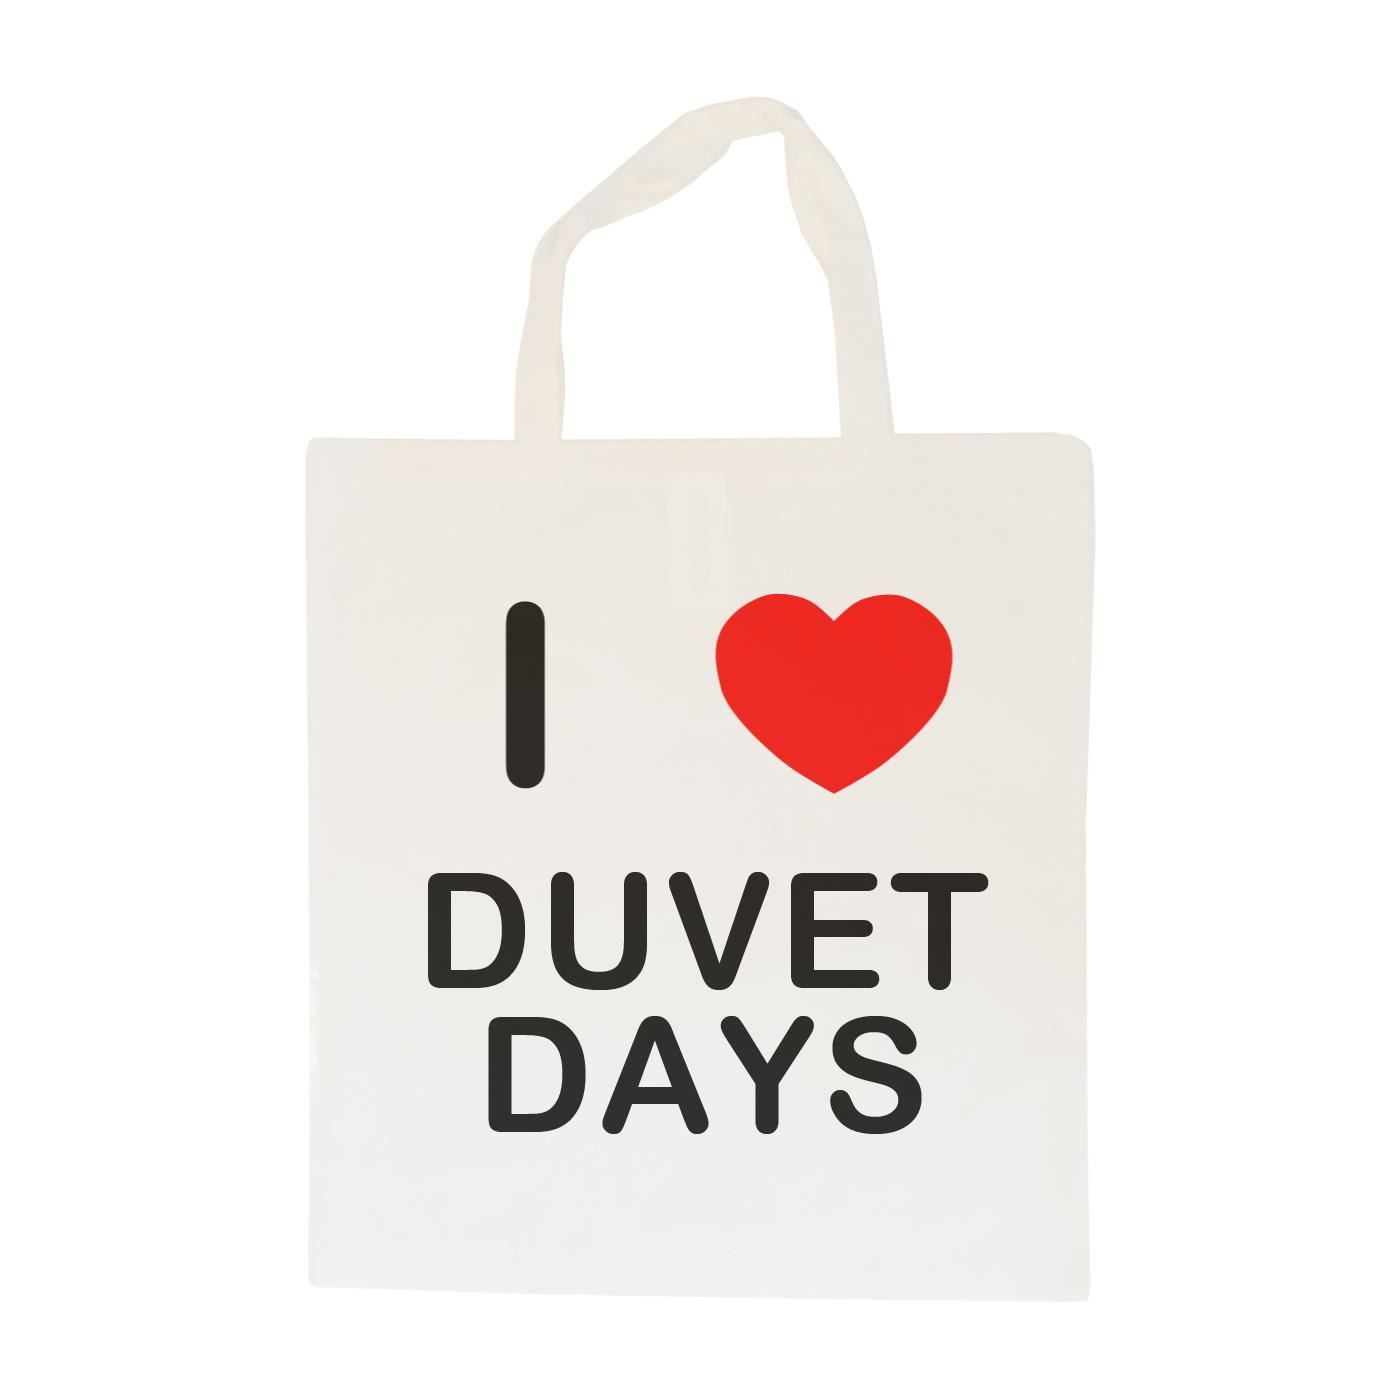 I Love Duvet Days - Cotton Bag | Size choice Tote, Shopper or Sling